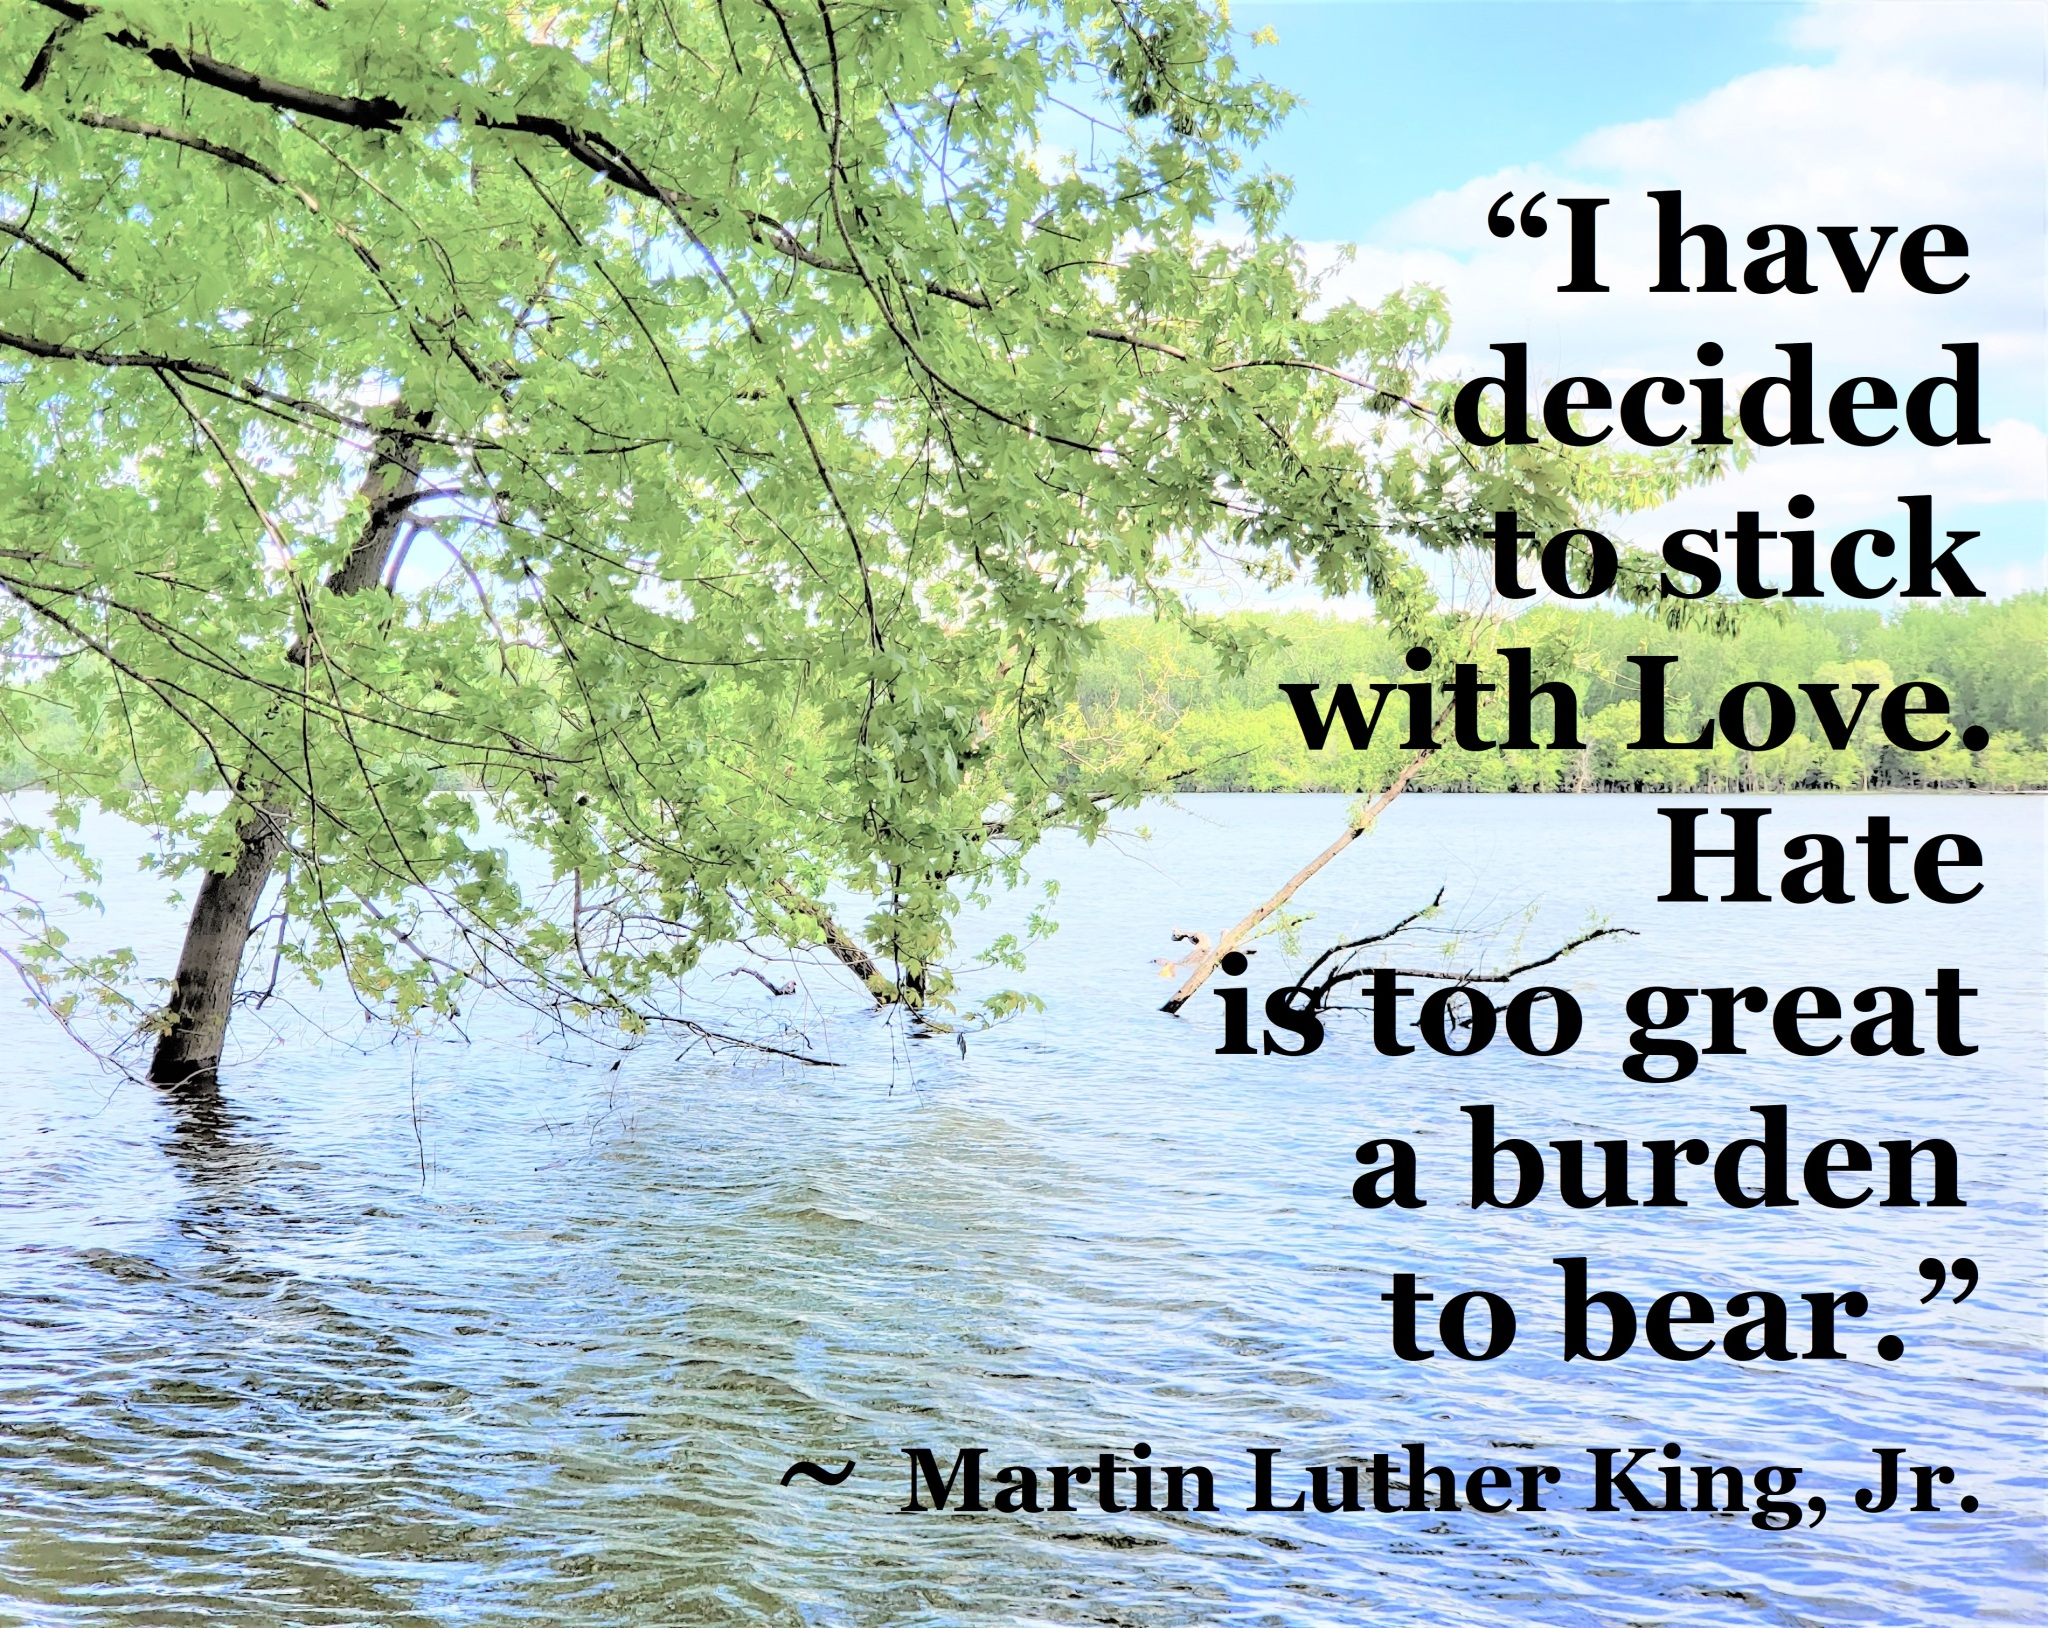 Martin Luther King Jr - stick with love hate too great a burden